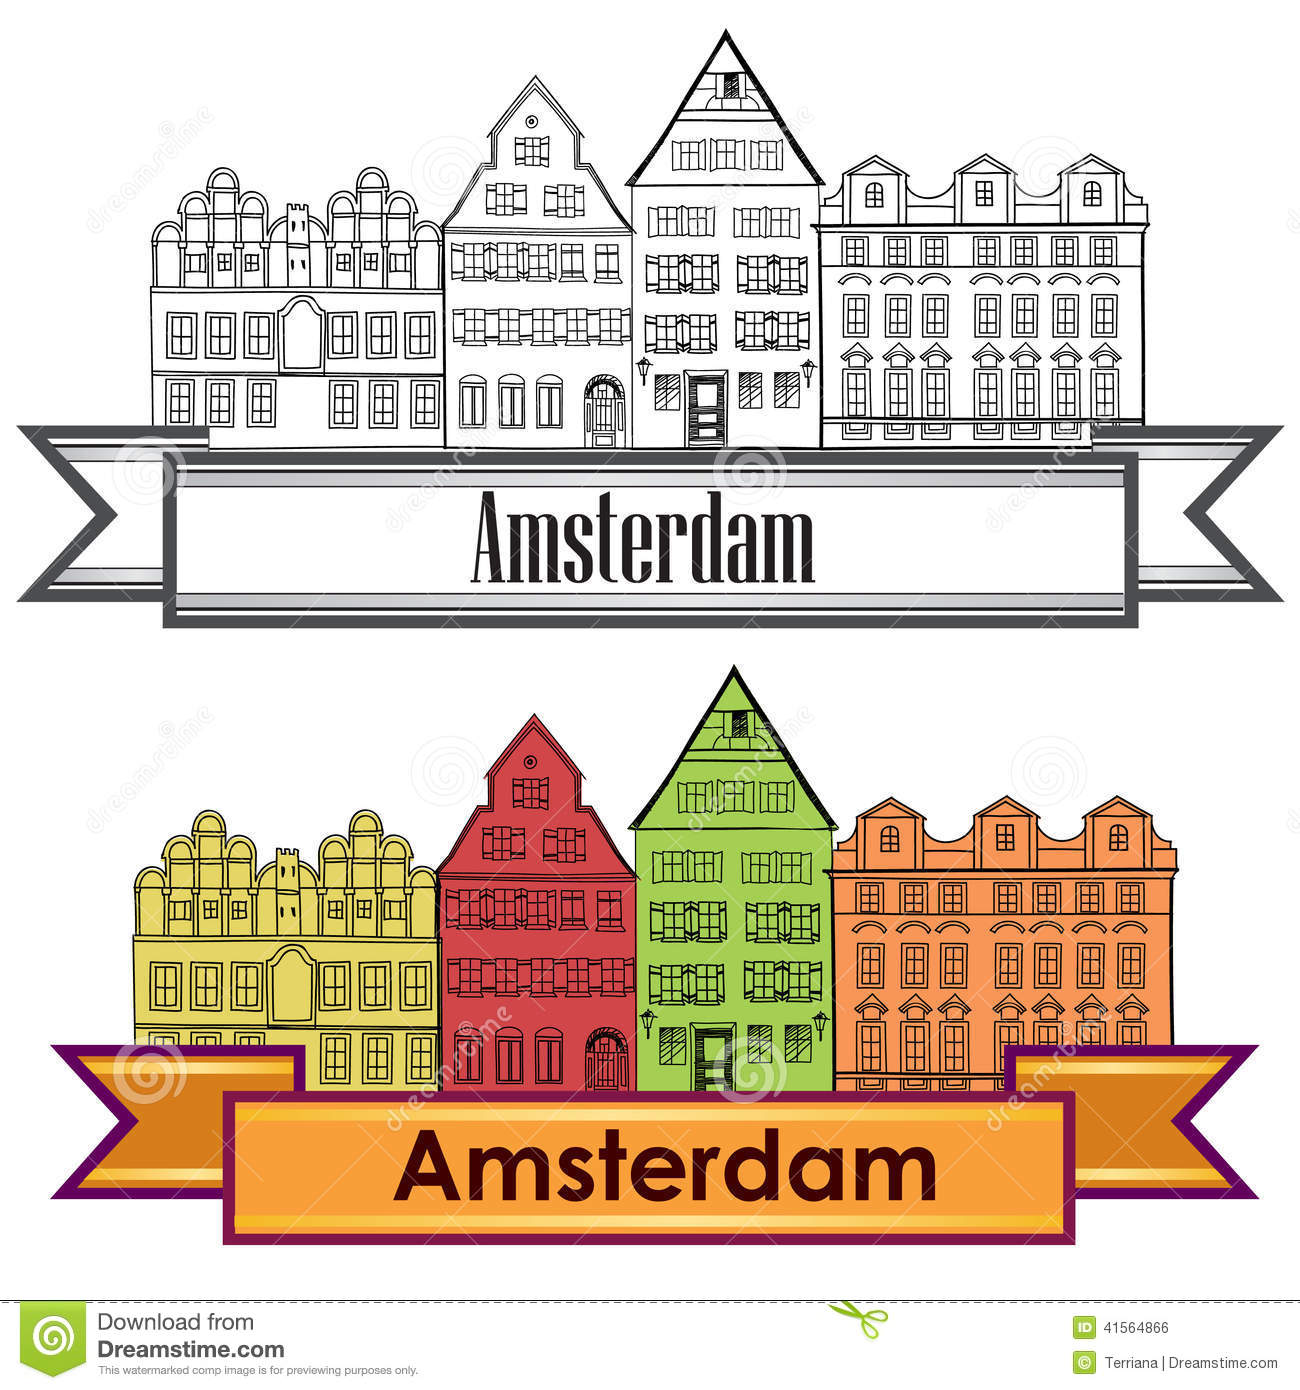 Amsterdam Canal Houses Netherlands Symbol Travel Europe Icon Stock Vector Image 41564866